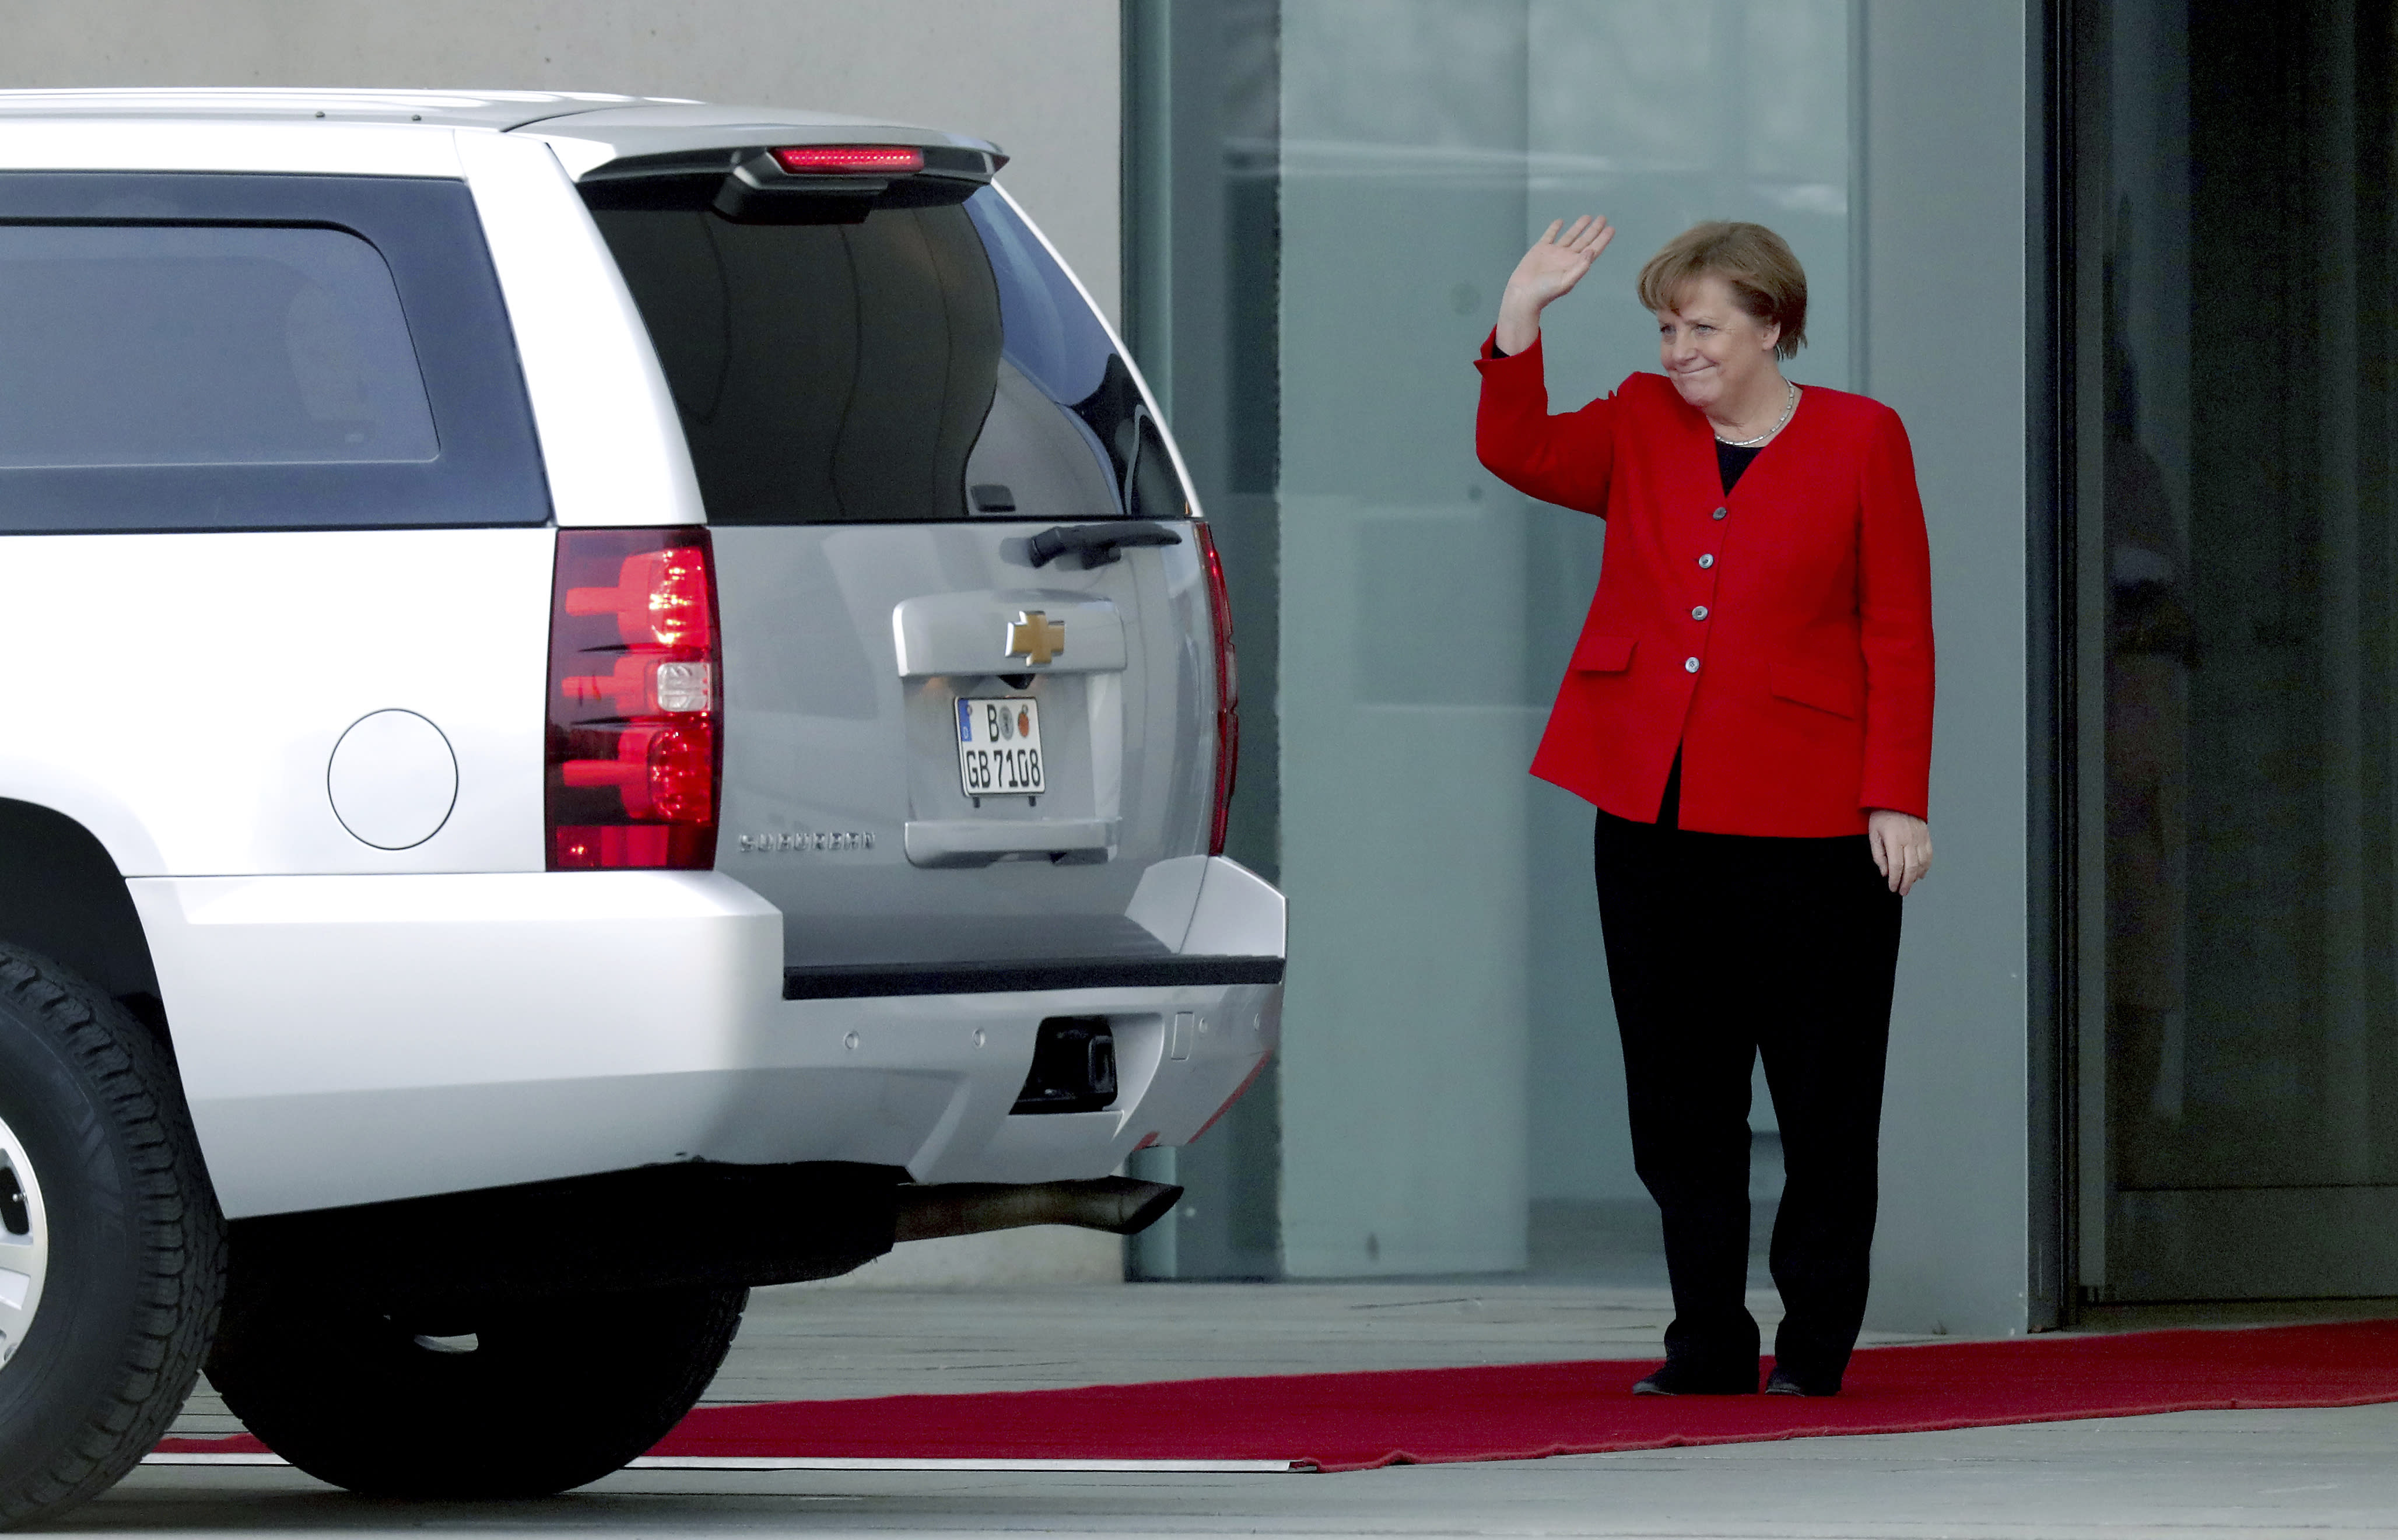 German Chancellor Angela Merkel waves farewell to former US President Barack Obama after a meeting at the chancellery in Berlin, Germany, Friday, April 5, 2019. (AP Photo/Michael Sohn)